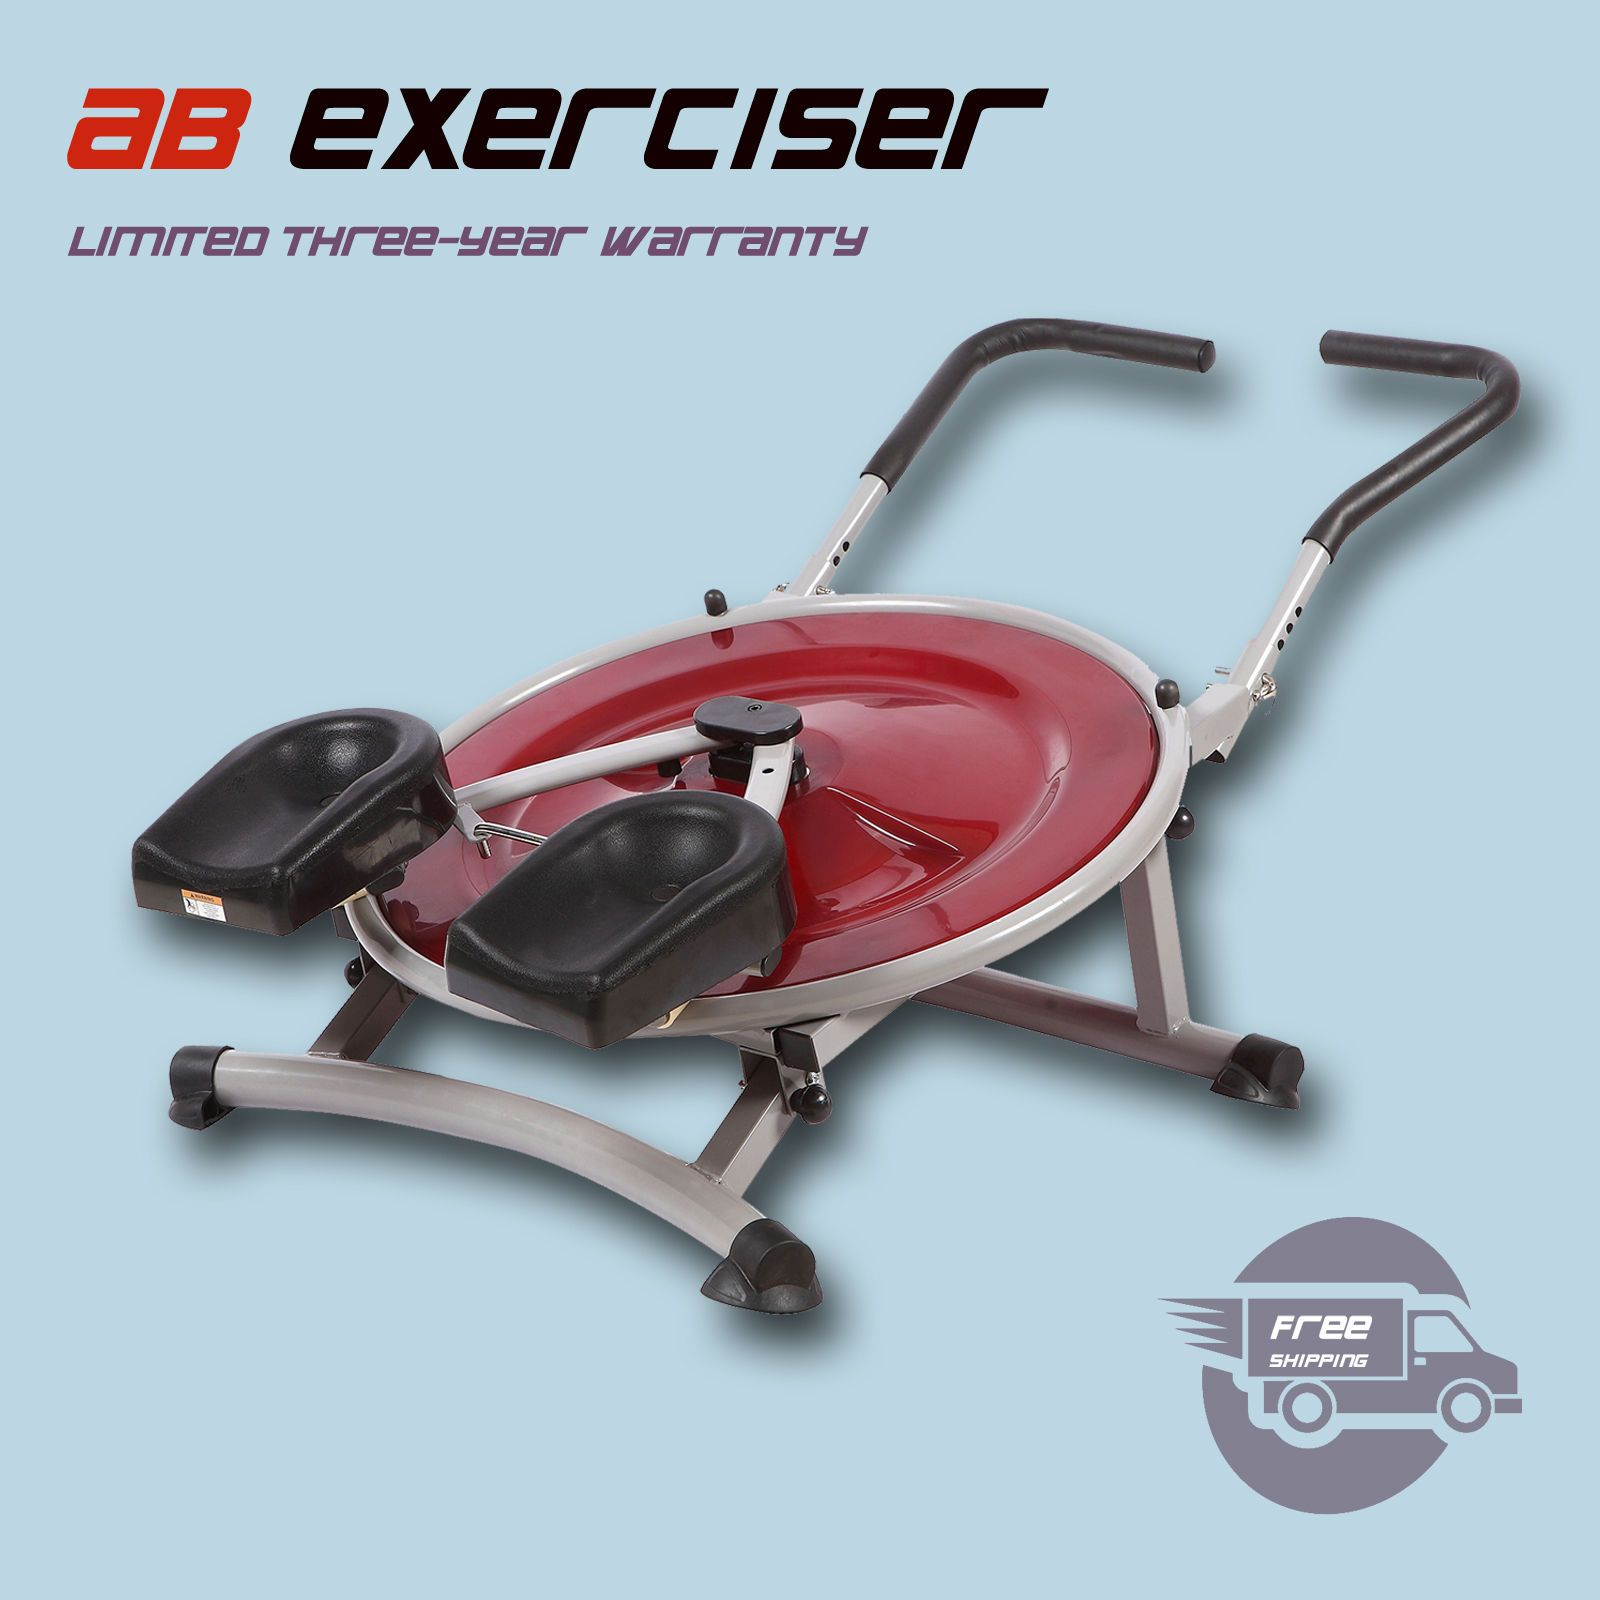 AB Circle Pro Abs Exercise Machine Workout Equipment Abdominal Fitness Home Gym #abexercisemachine